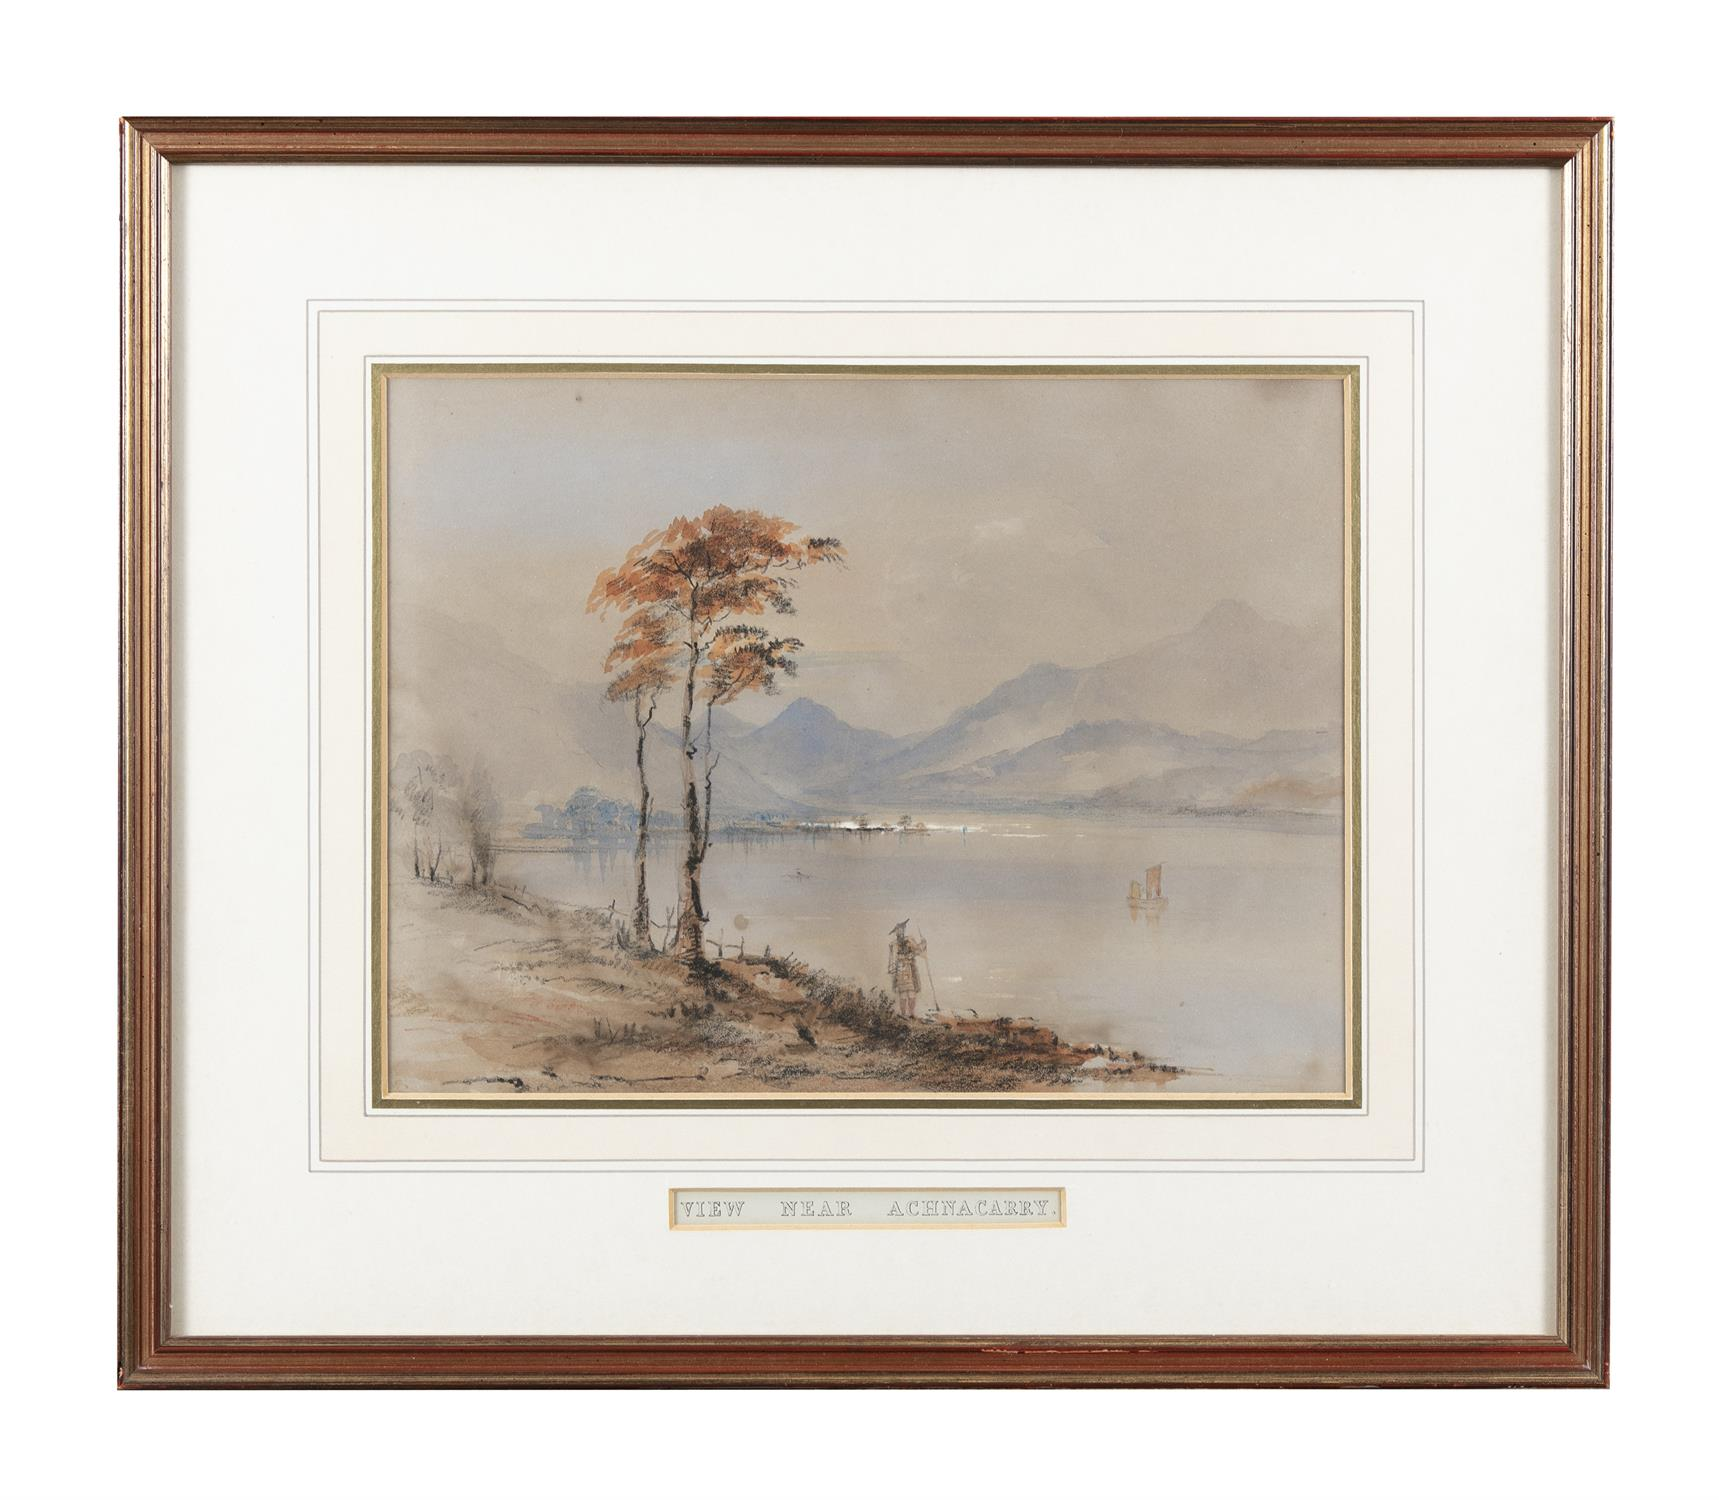 Frederick Marquis of Londonderry 'View Near Achnacarry' and 'View Near Ragatz' Three watercolours, - Image 8 of 8